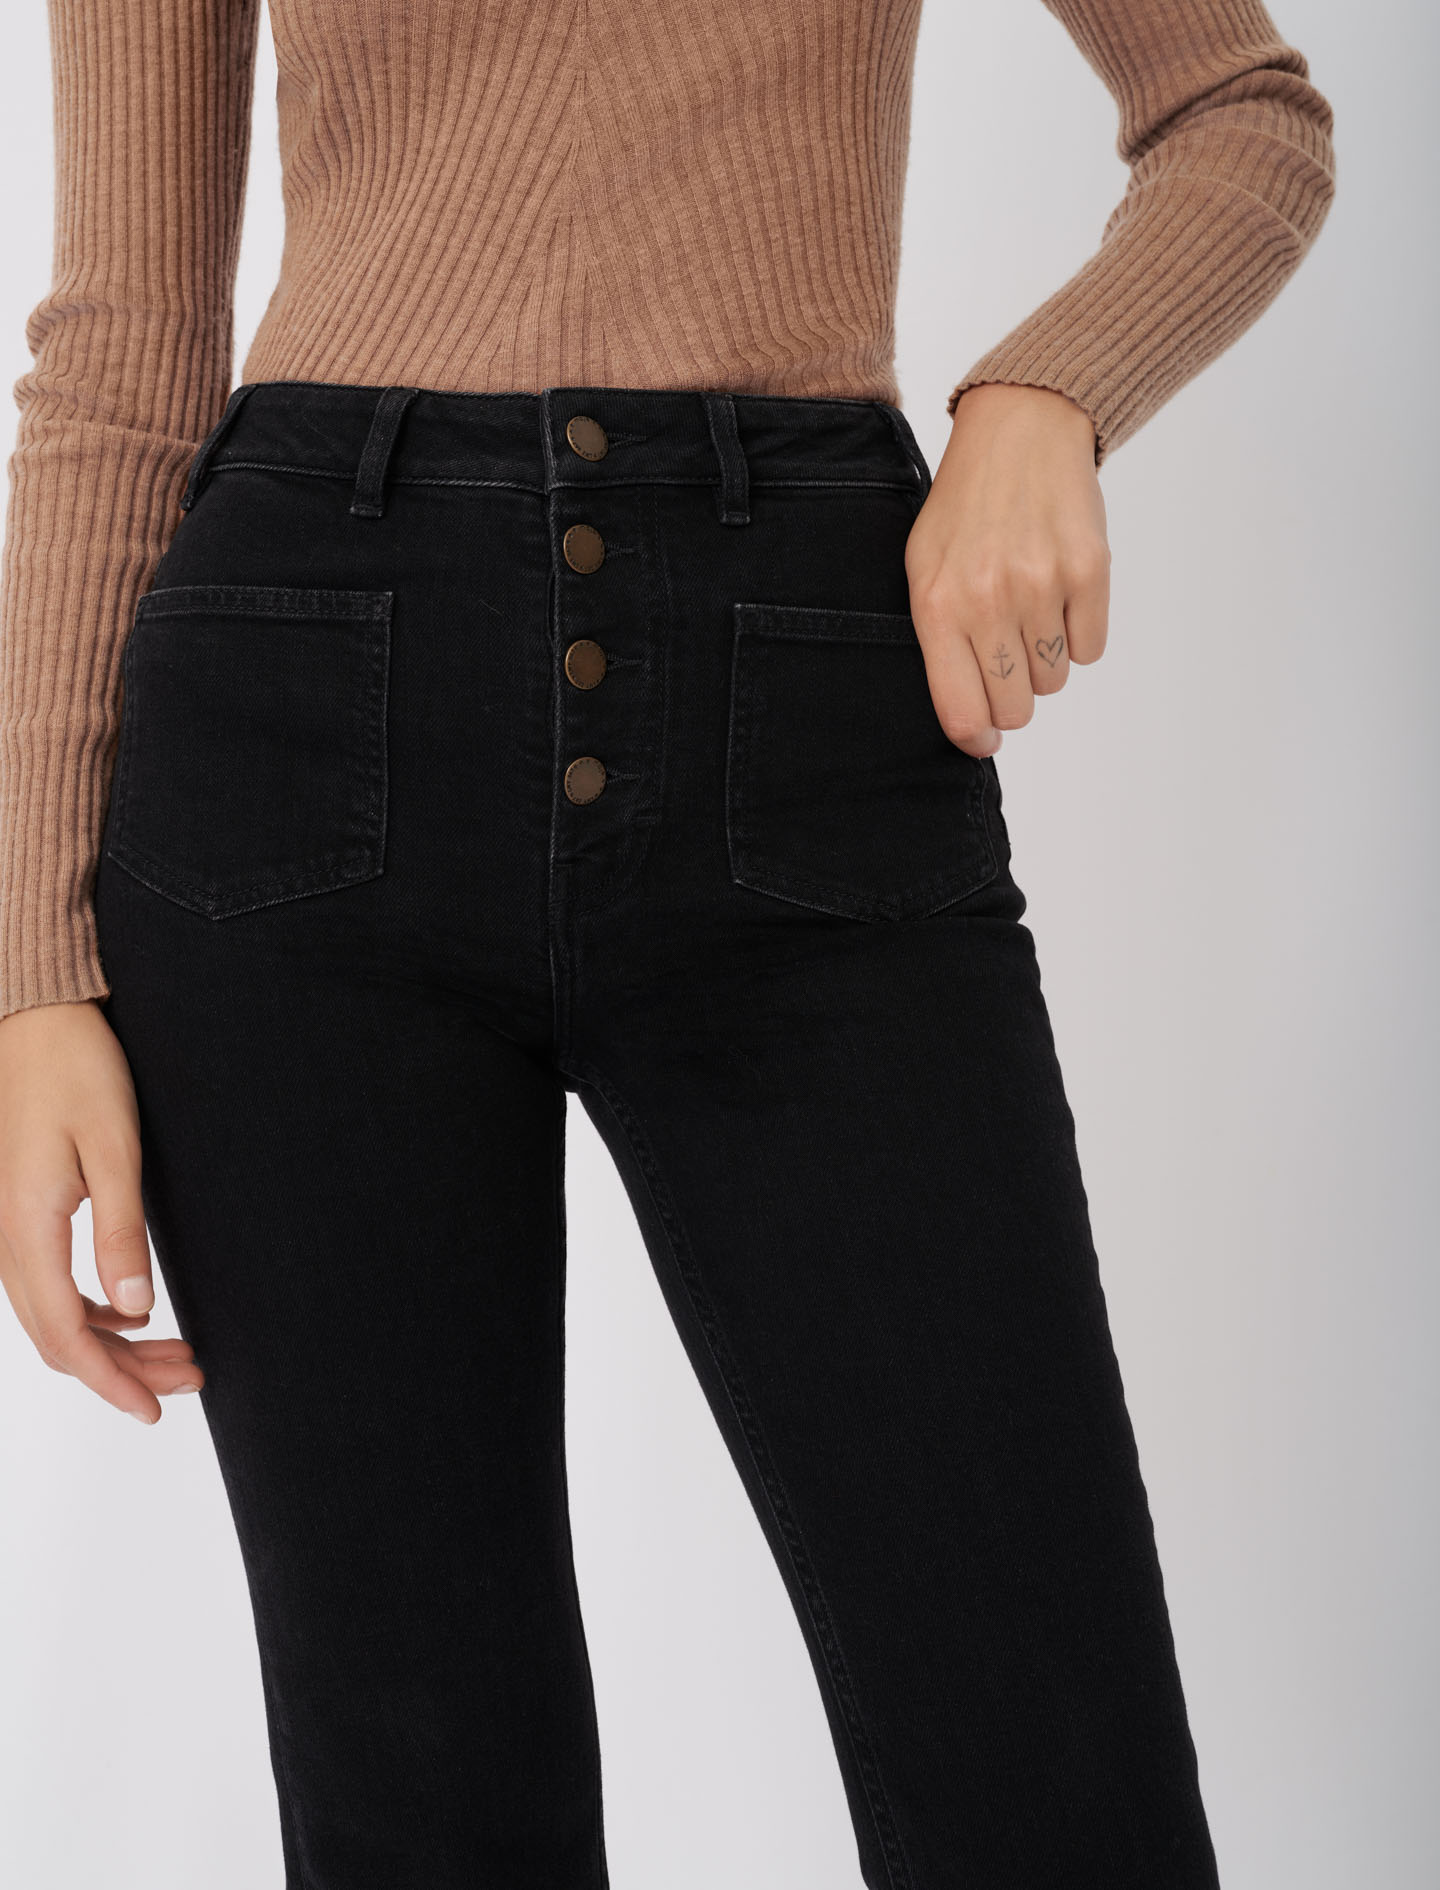 Jeans with pockets, flared at the bottom - Black